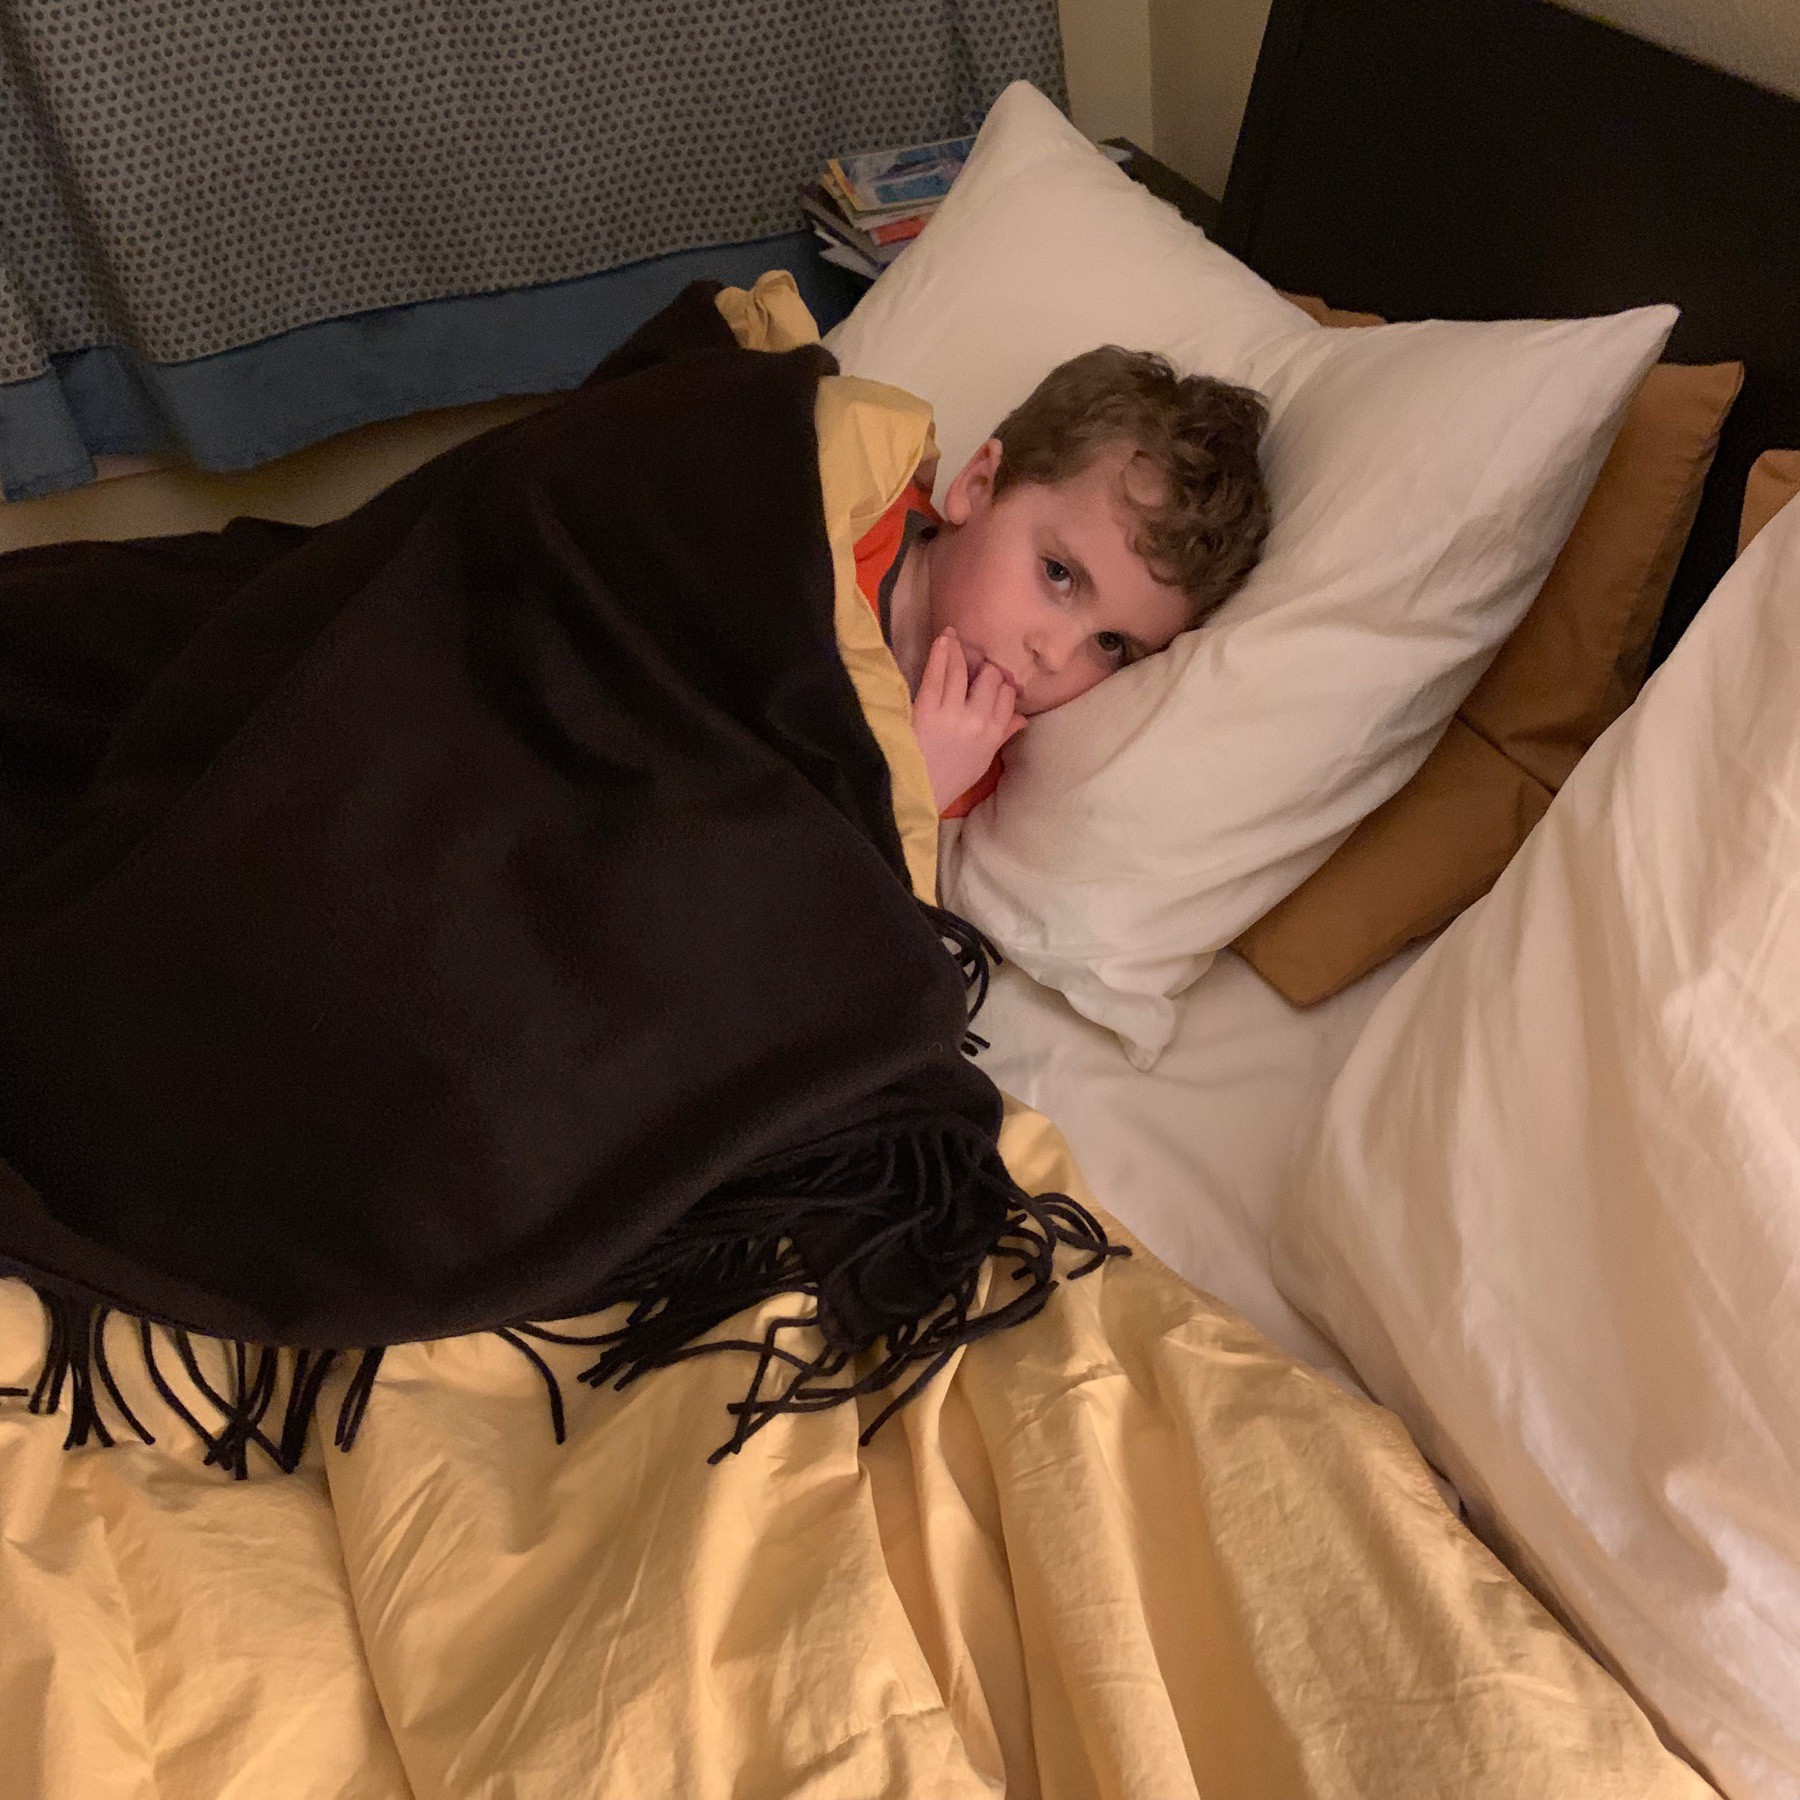 nephew cozy in bed